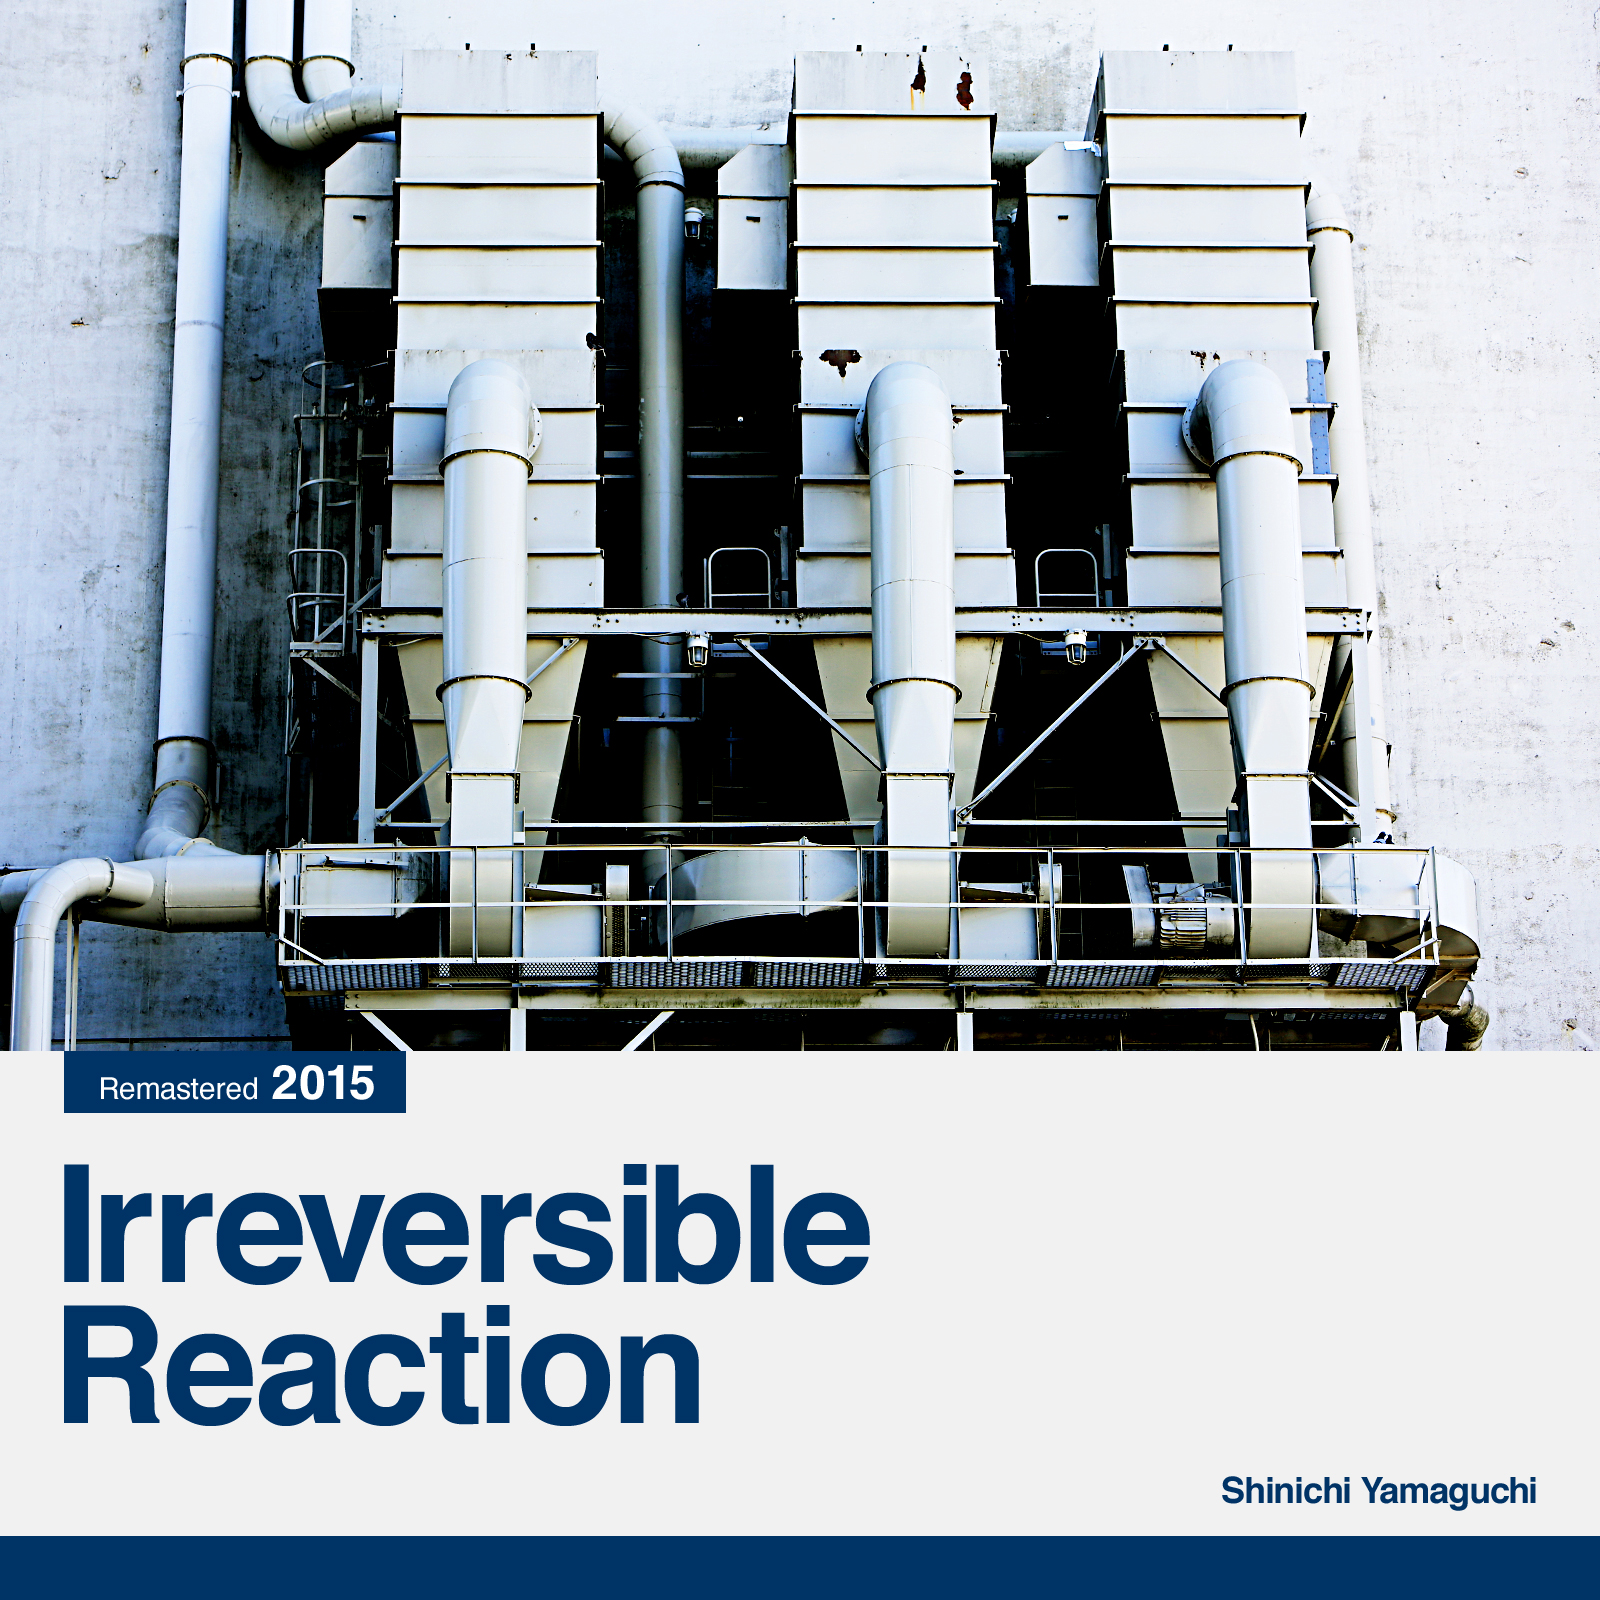 irreversible reaction